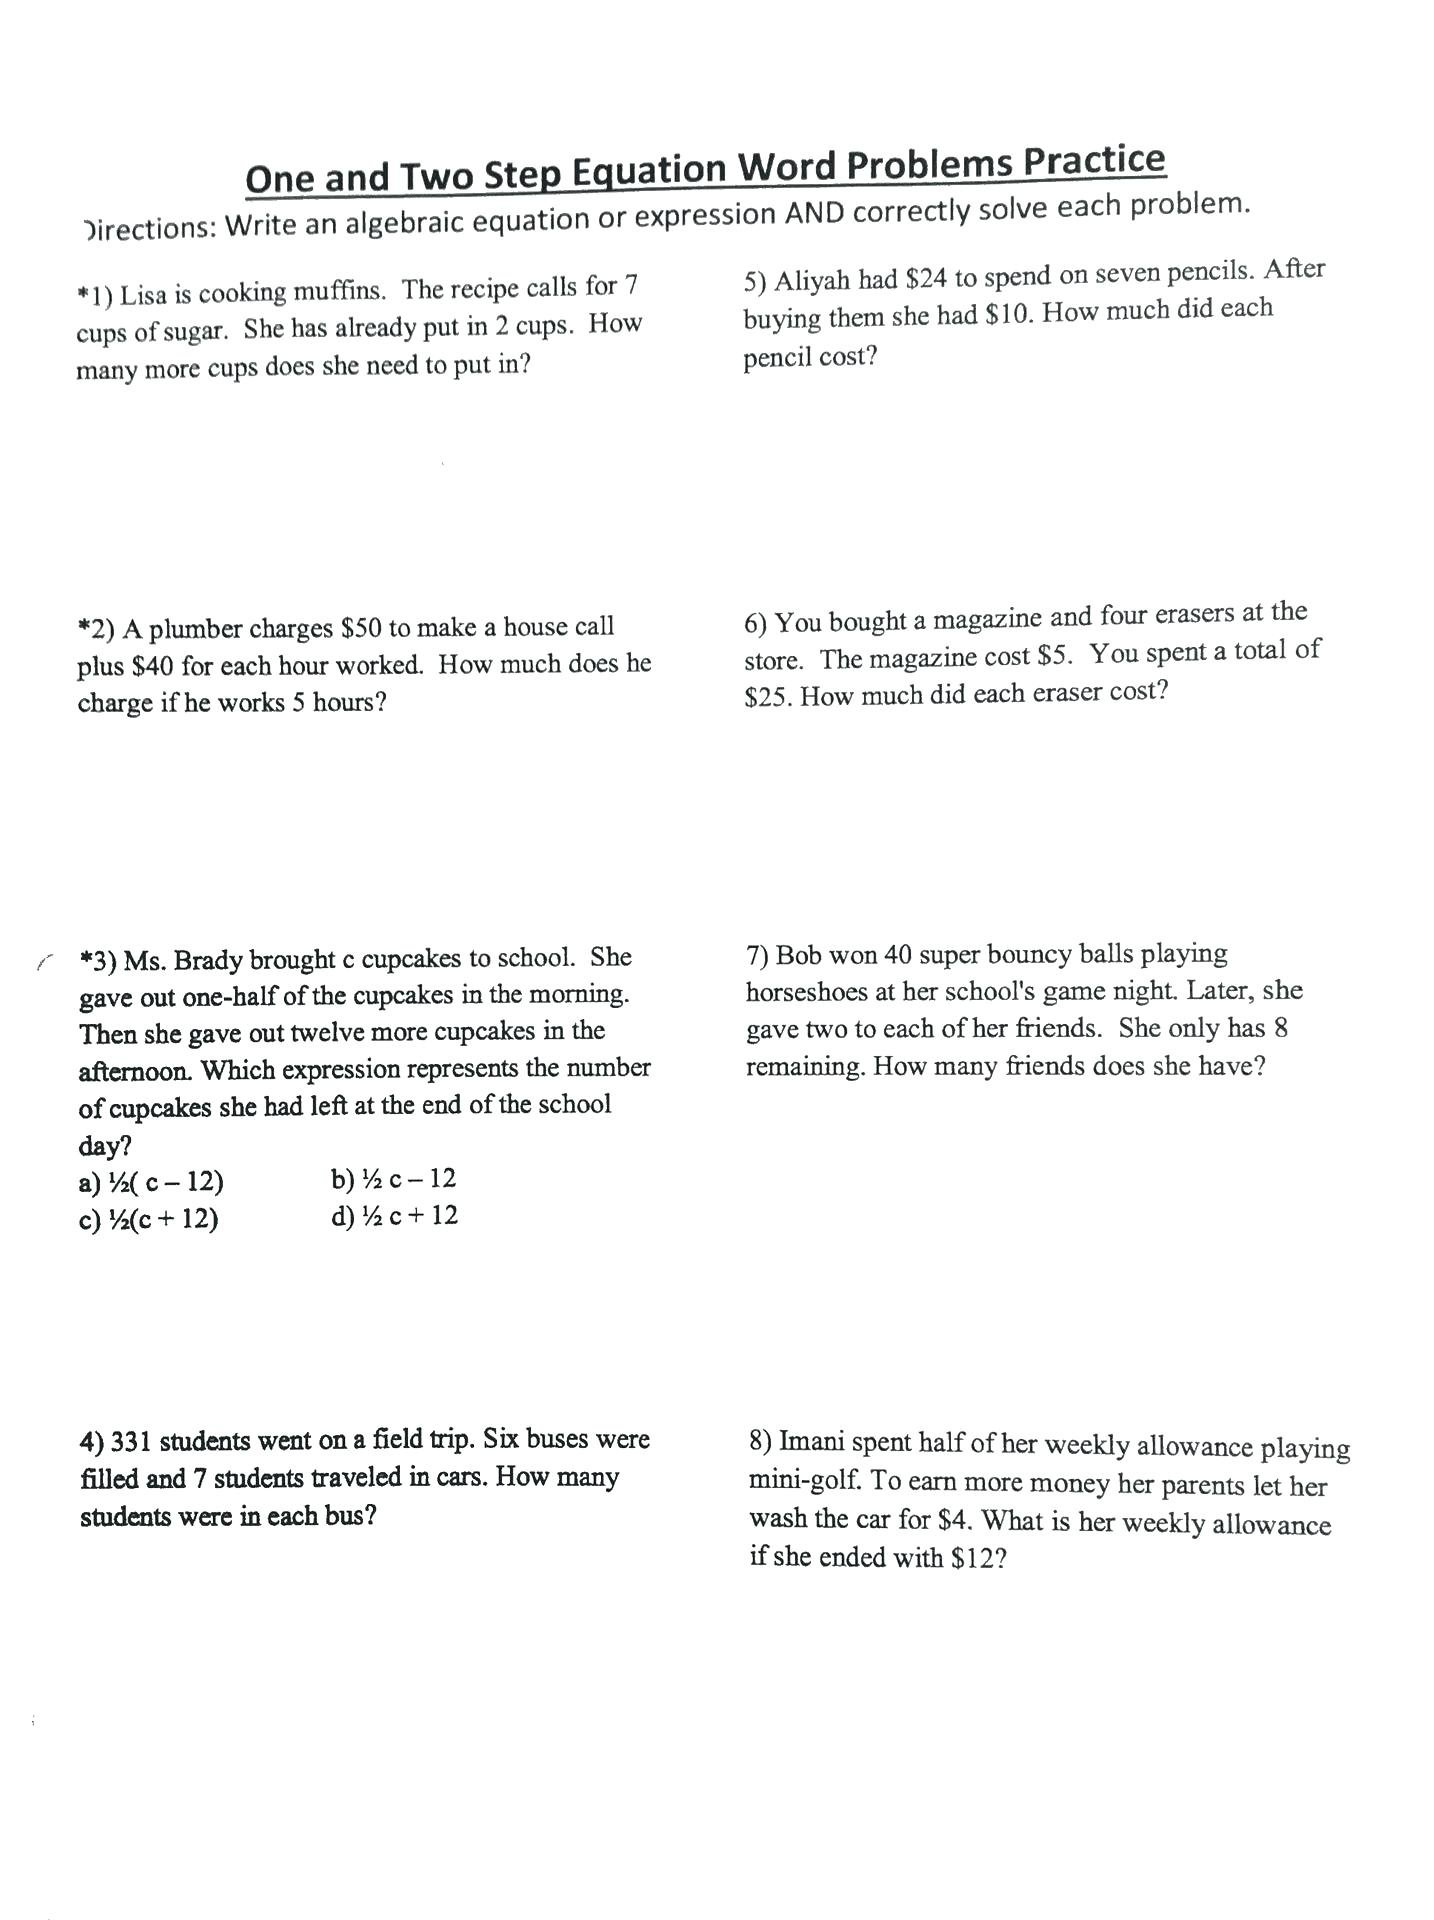 Two Step Equations Word Problems Worksheet  Soccerphysicsonline In Two Step Equations Word Problems Worksheet